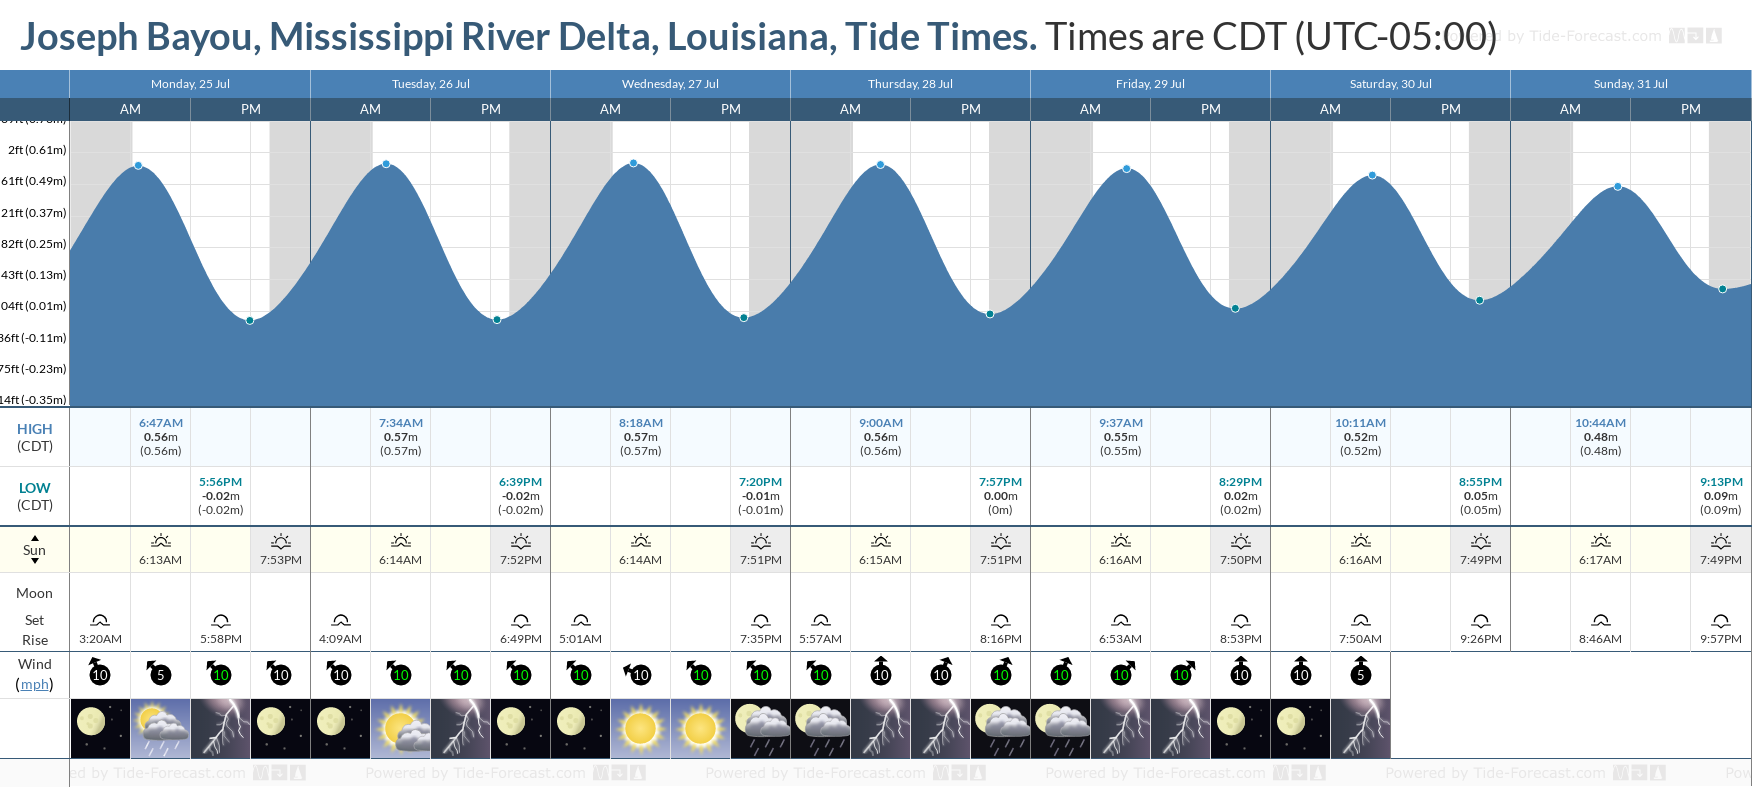 Joseph Bayou, Mississippi River Delta, Louisiana Tide Chart including high and low tide tide times for the next 7 days